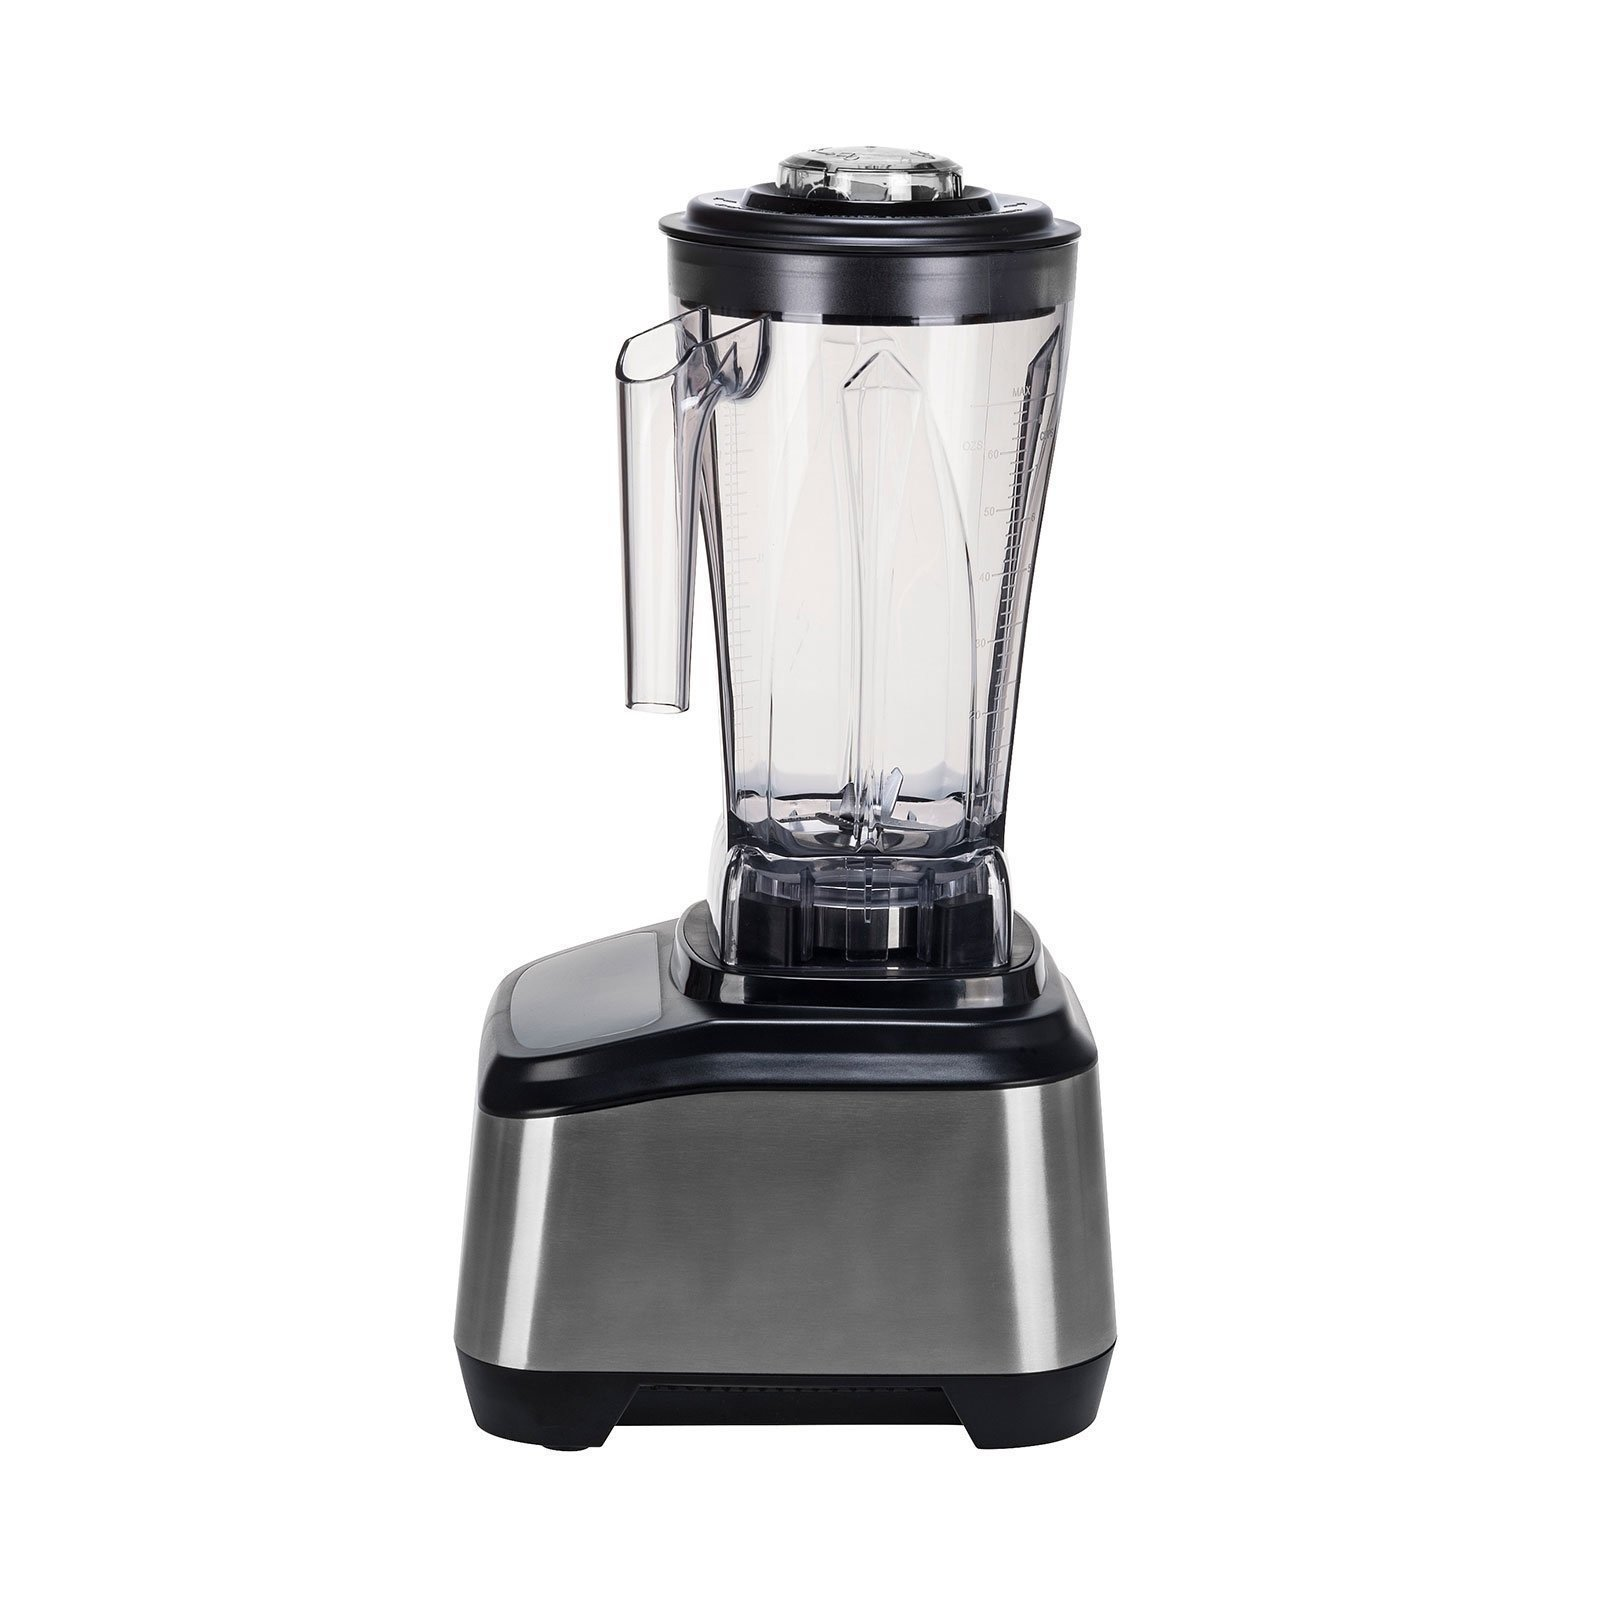 BioChef Atlas Power Blender Black Side